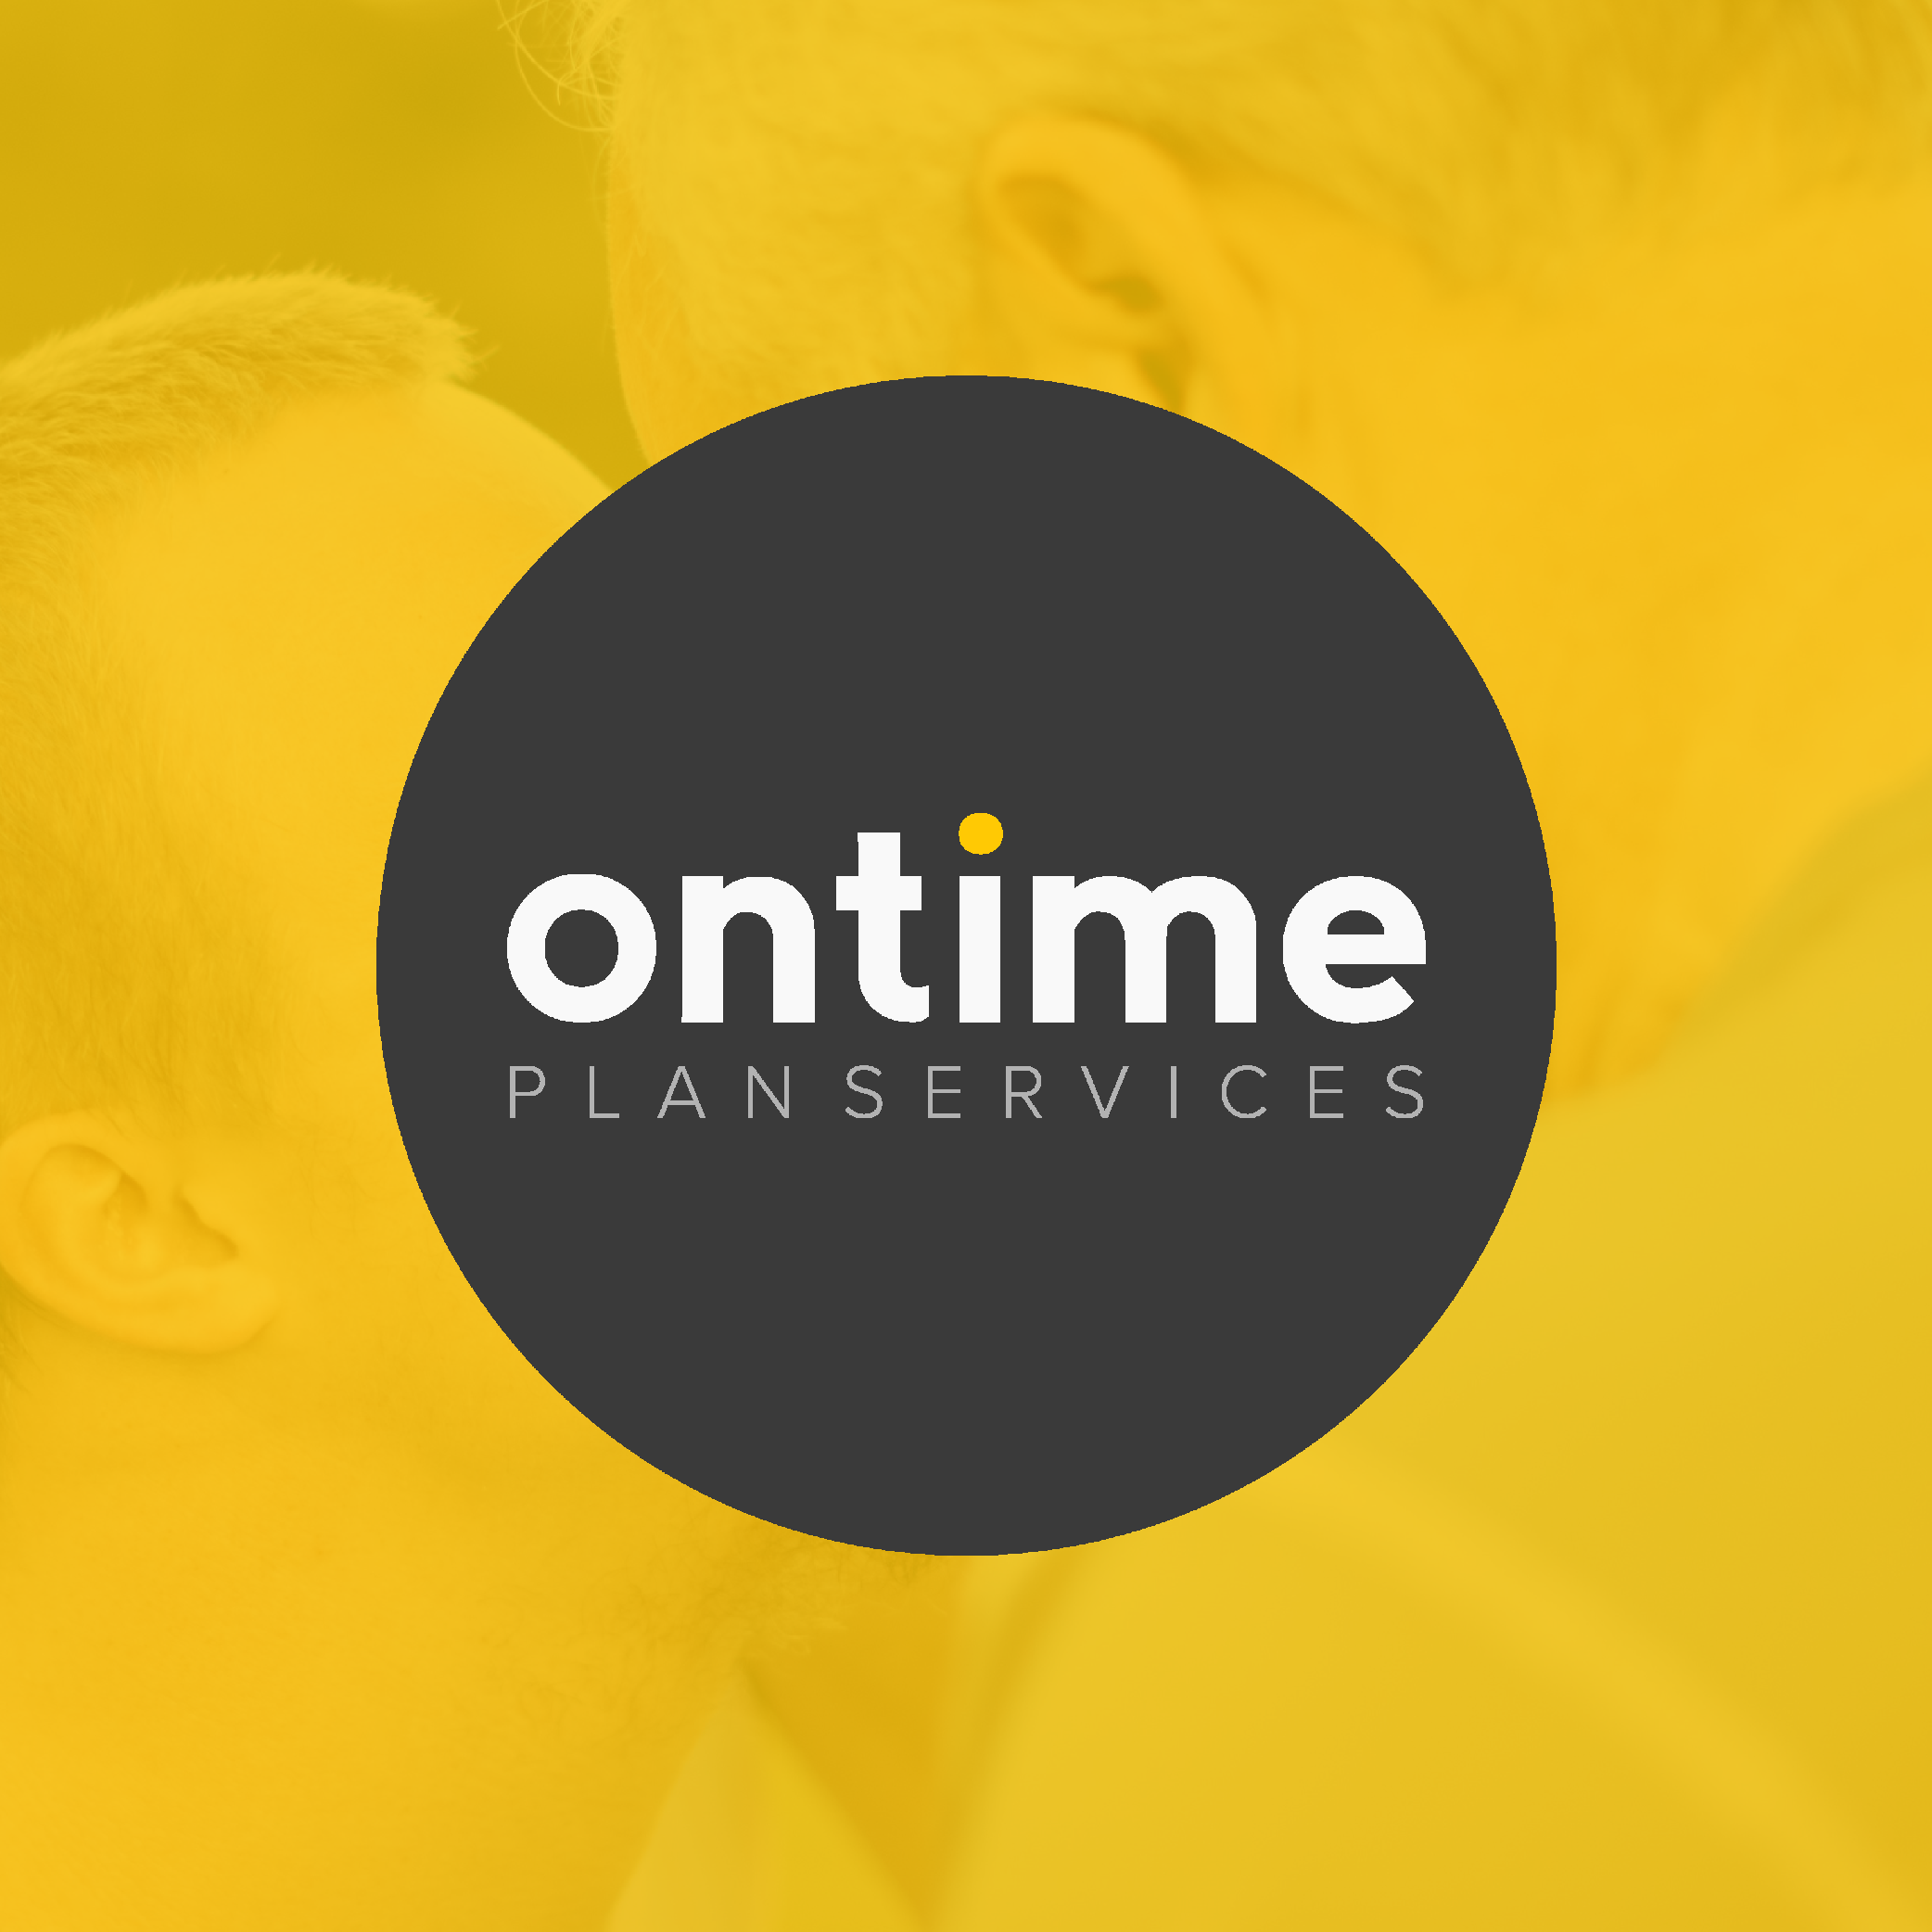 Ontime Plan Services